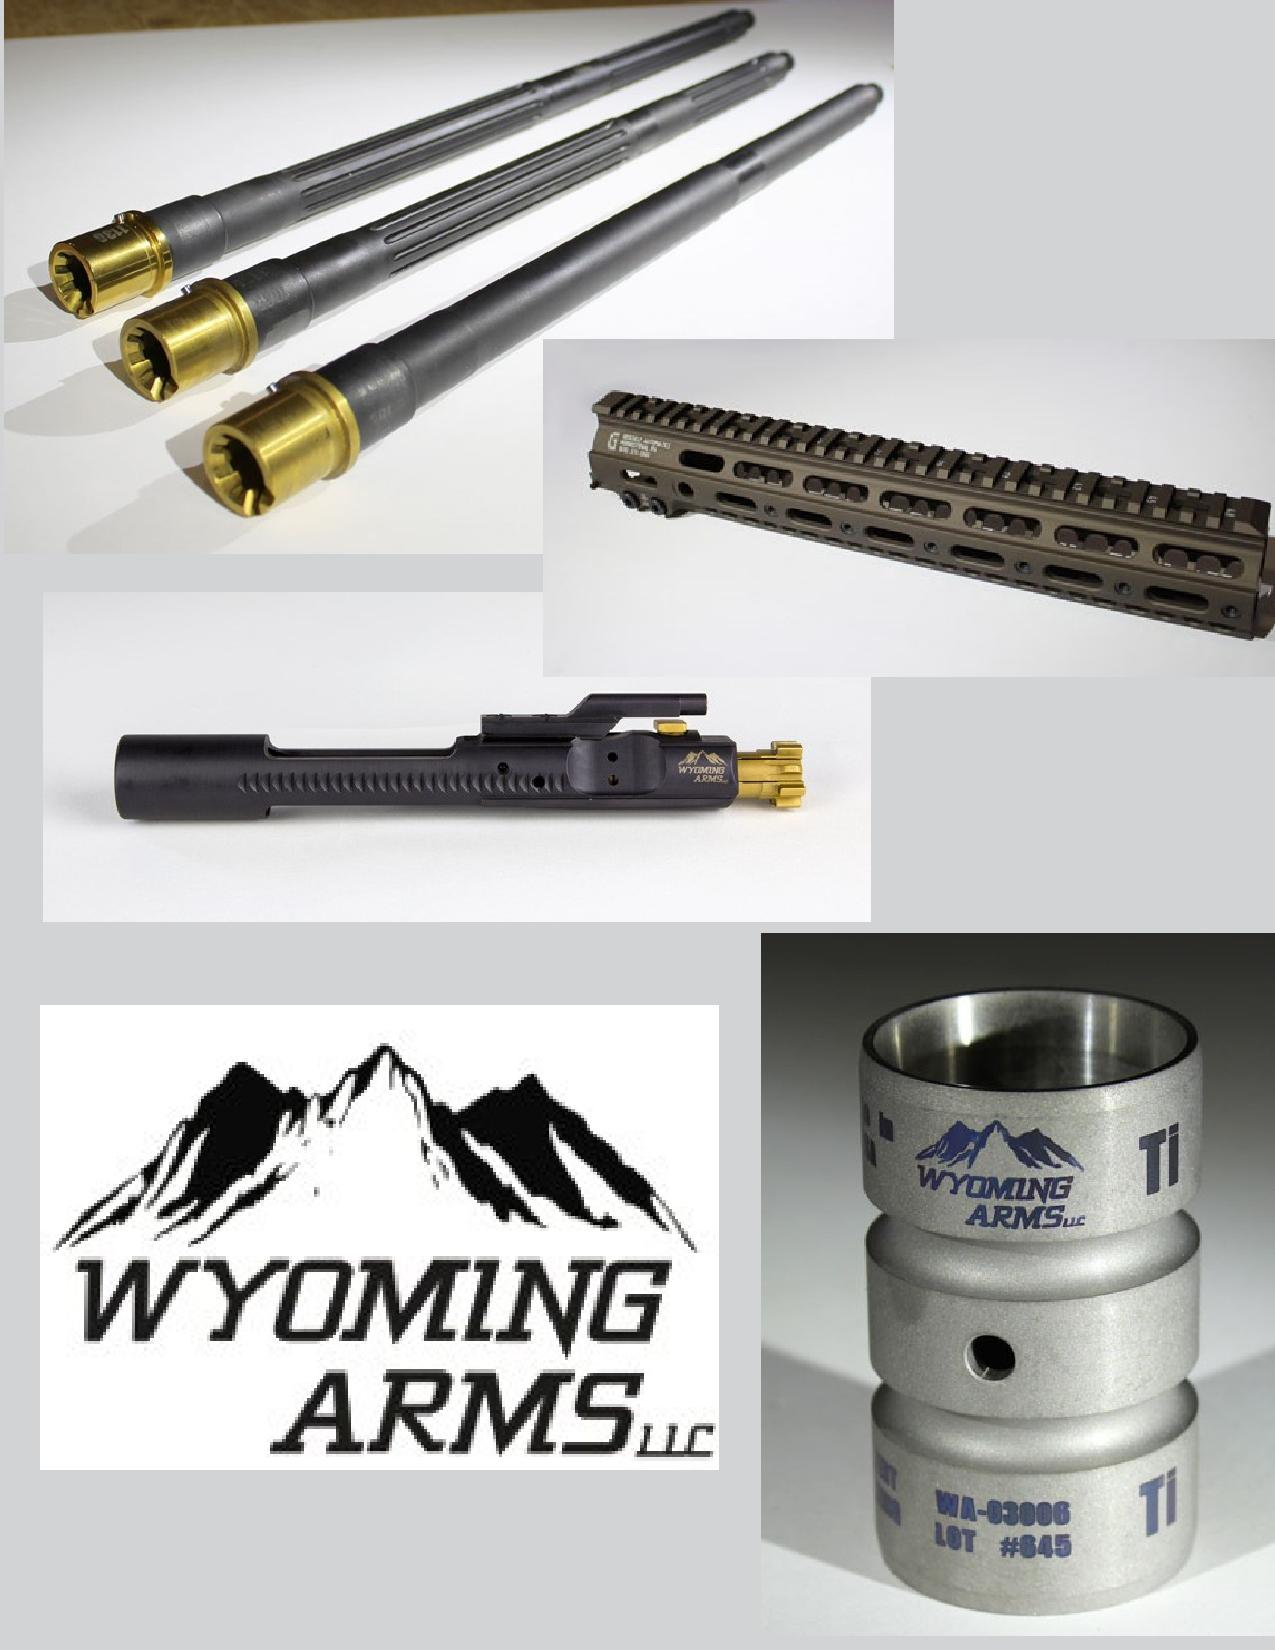 AR-15, WYOMING ARMS, RIFLE, barrel, handguard,